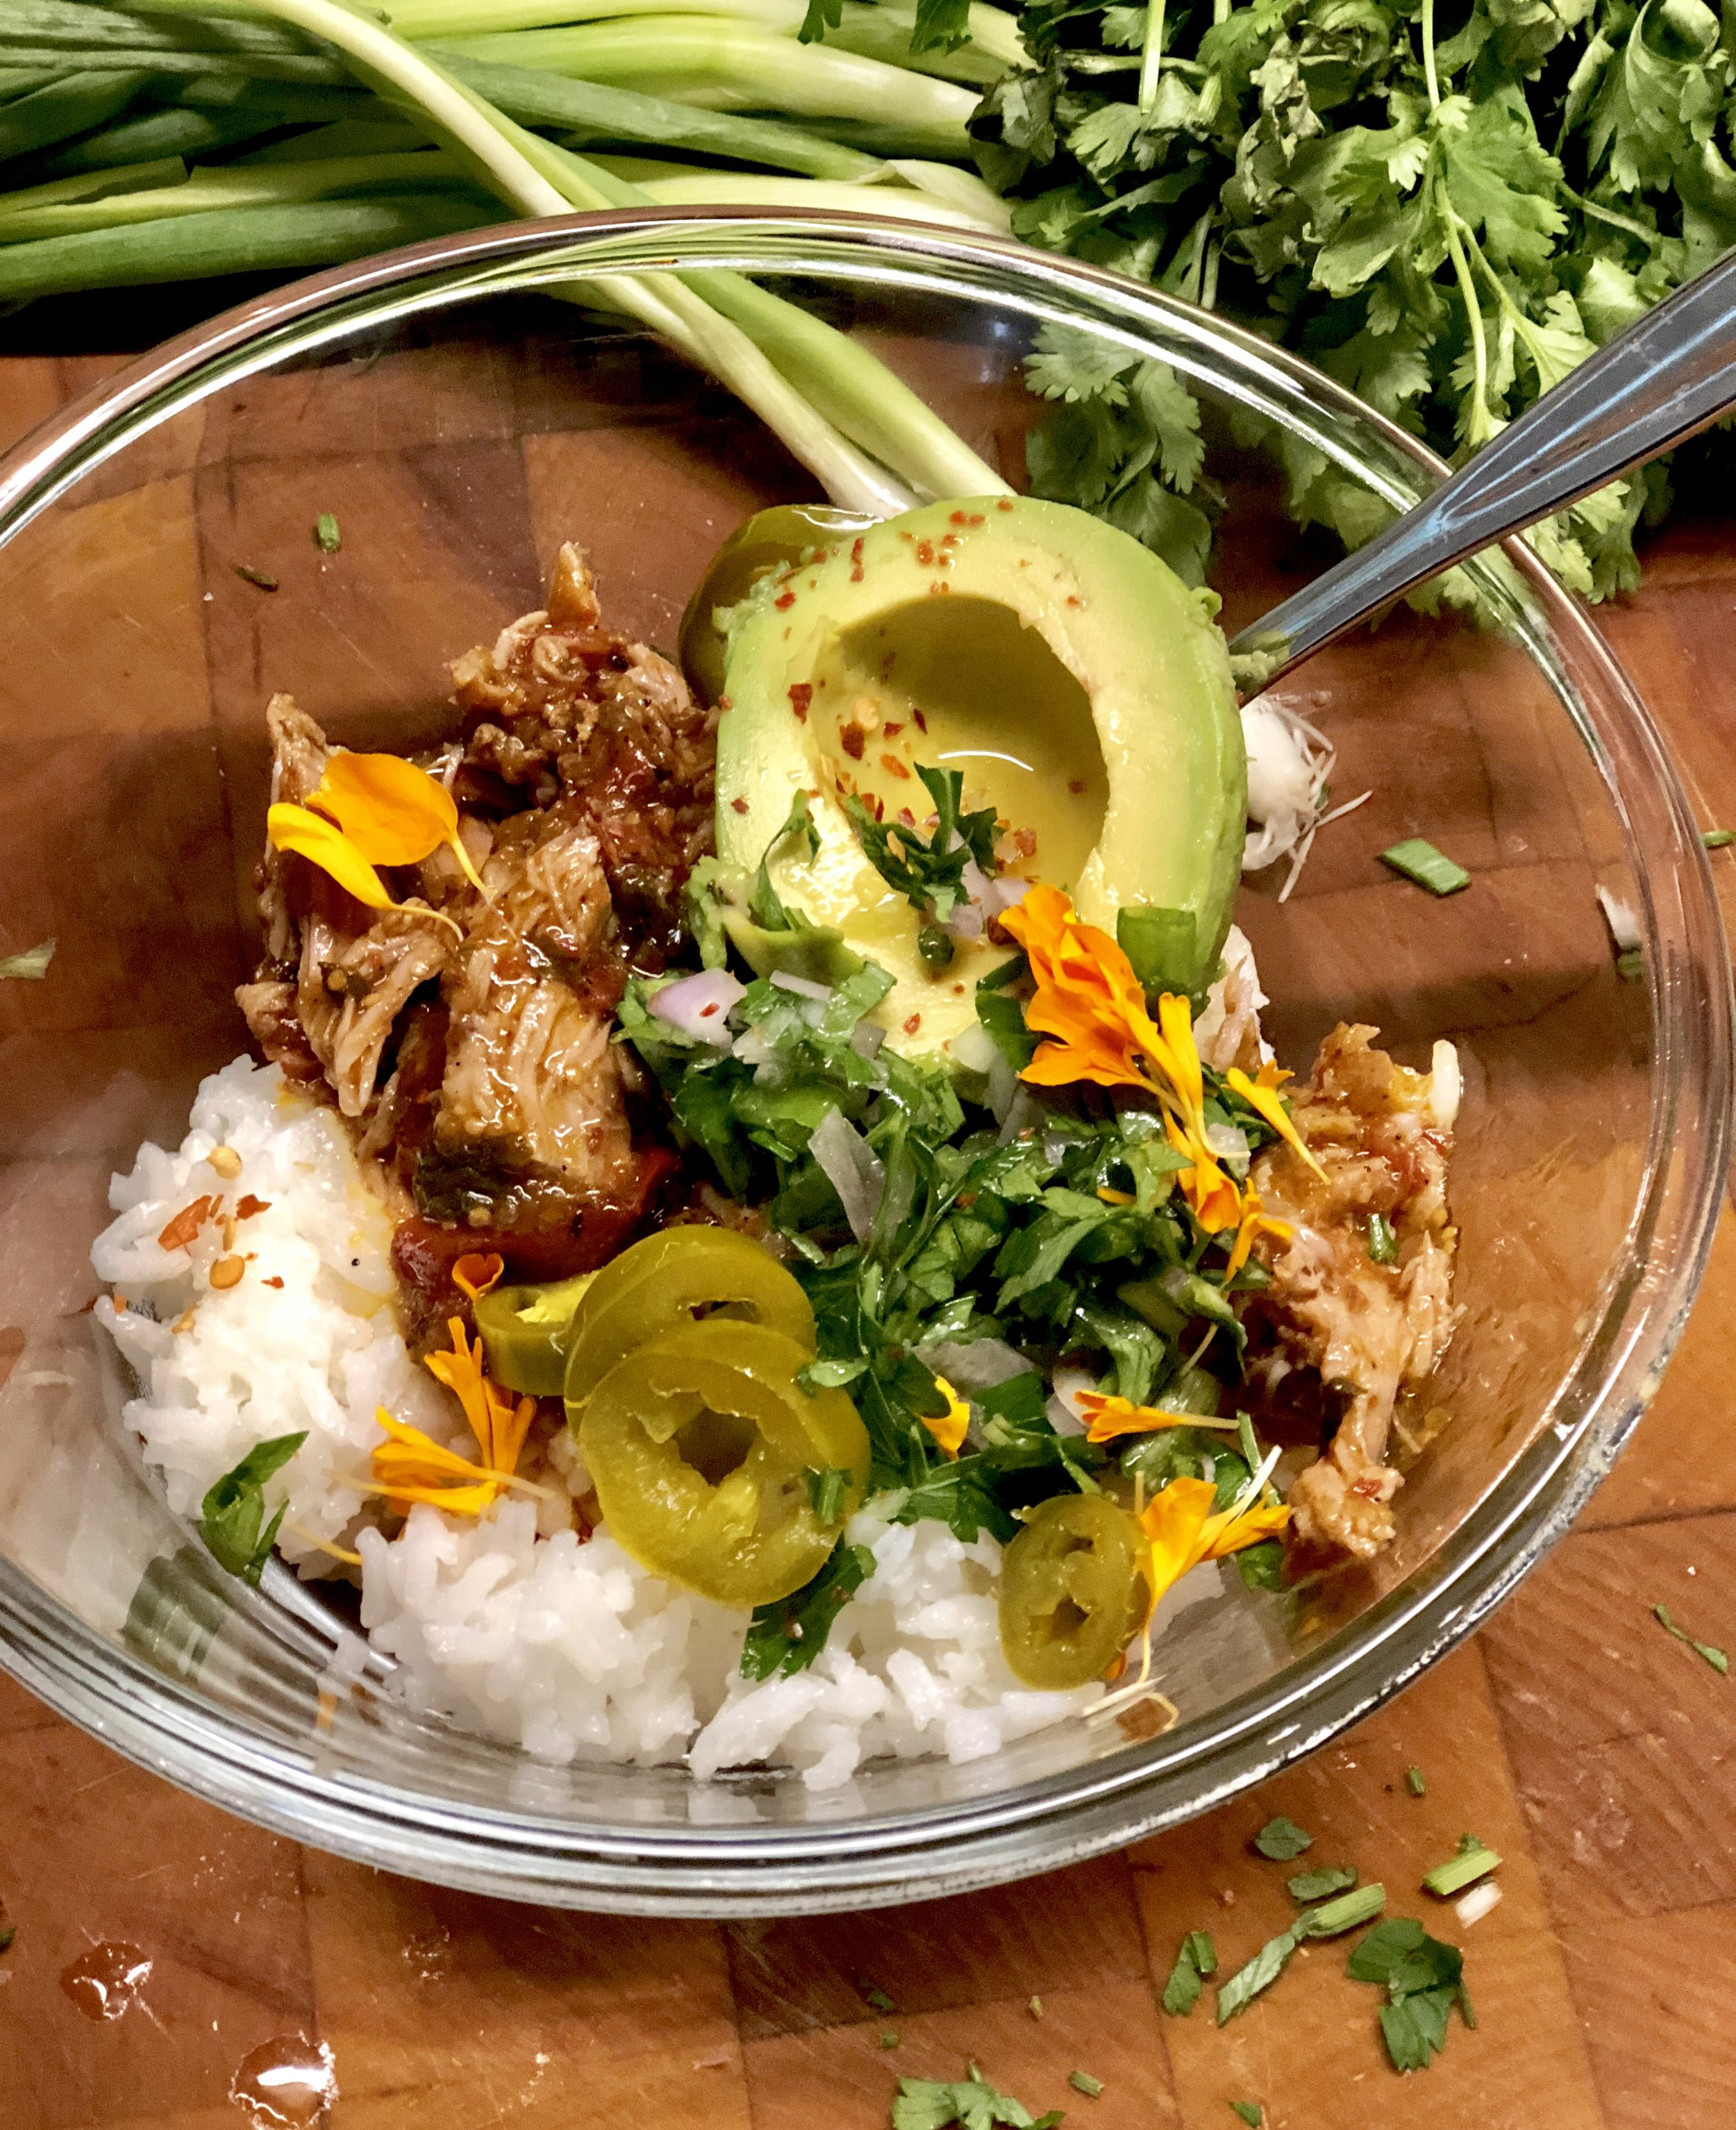 Serve it like this. People can choose the bite they're in the mood for. A bit of rice, a bit of pork. A spoonful of avocado with a bit of jalapeño. Every bite interesting.